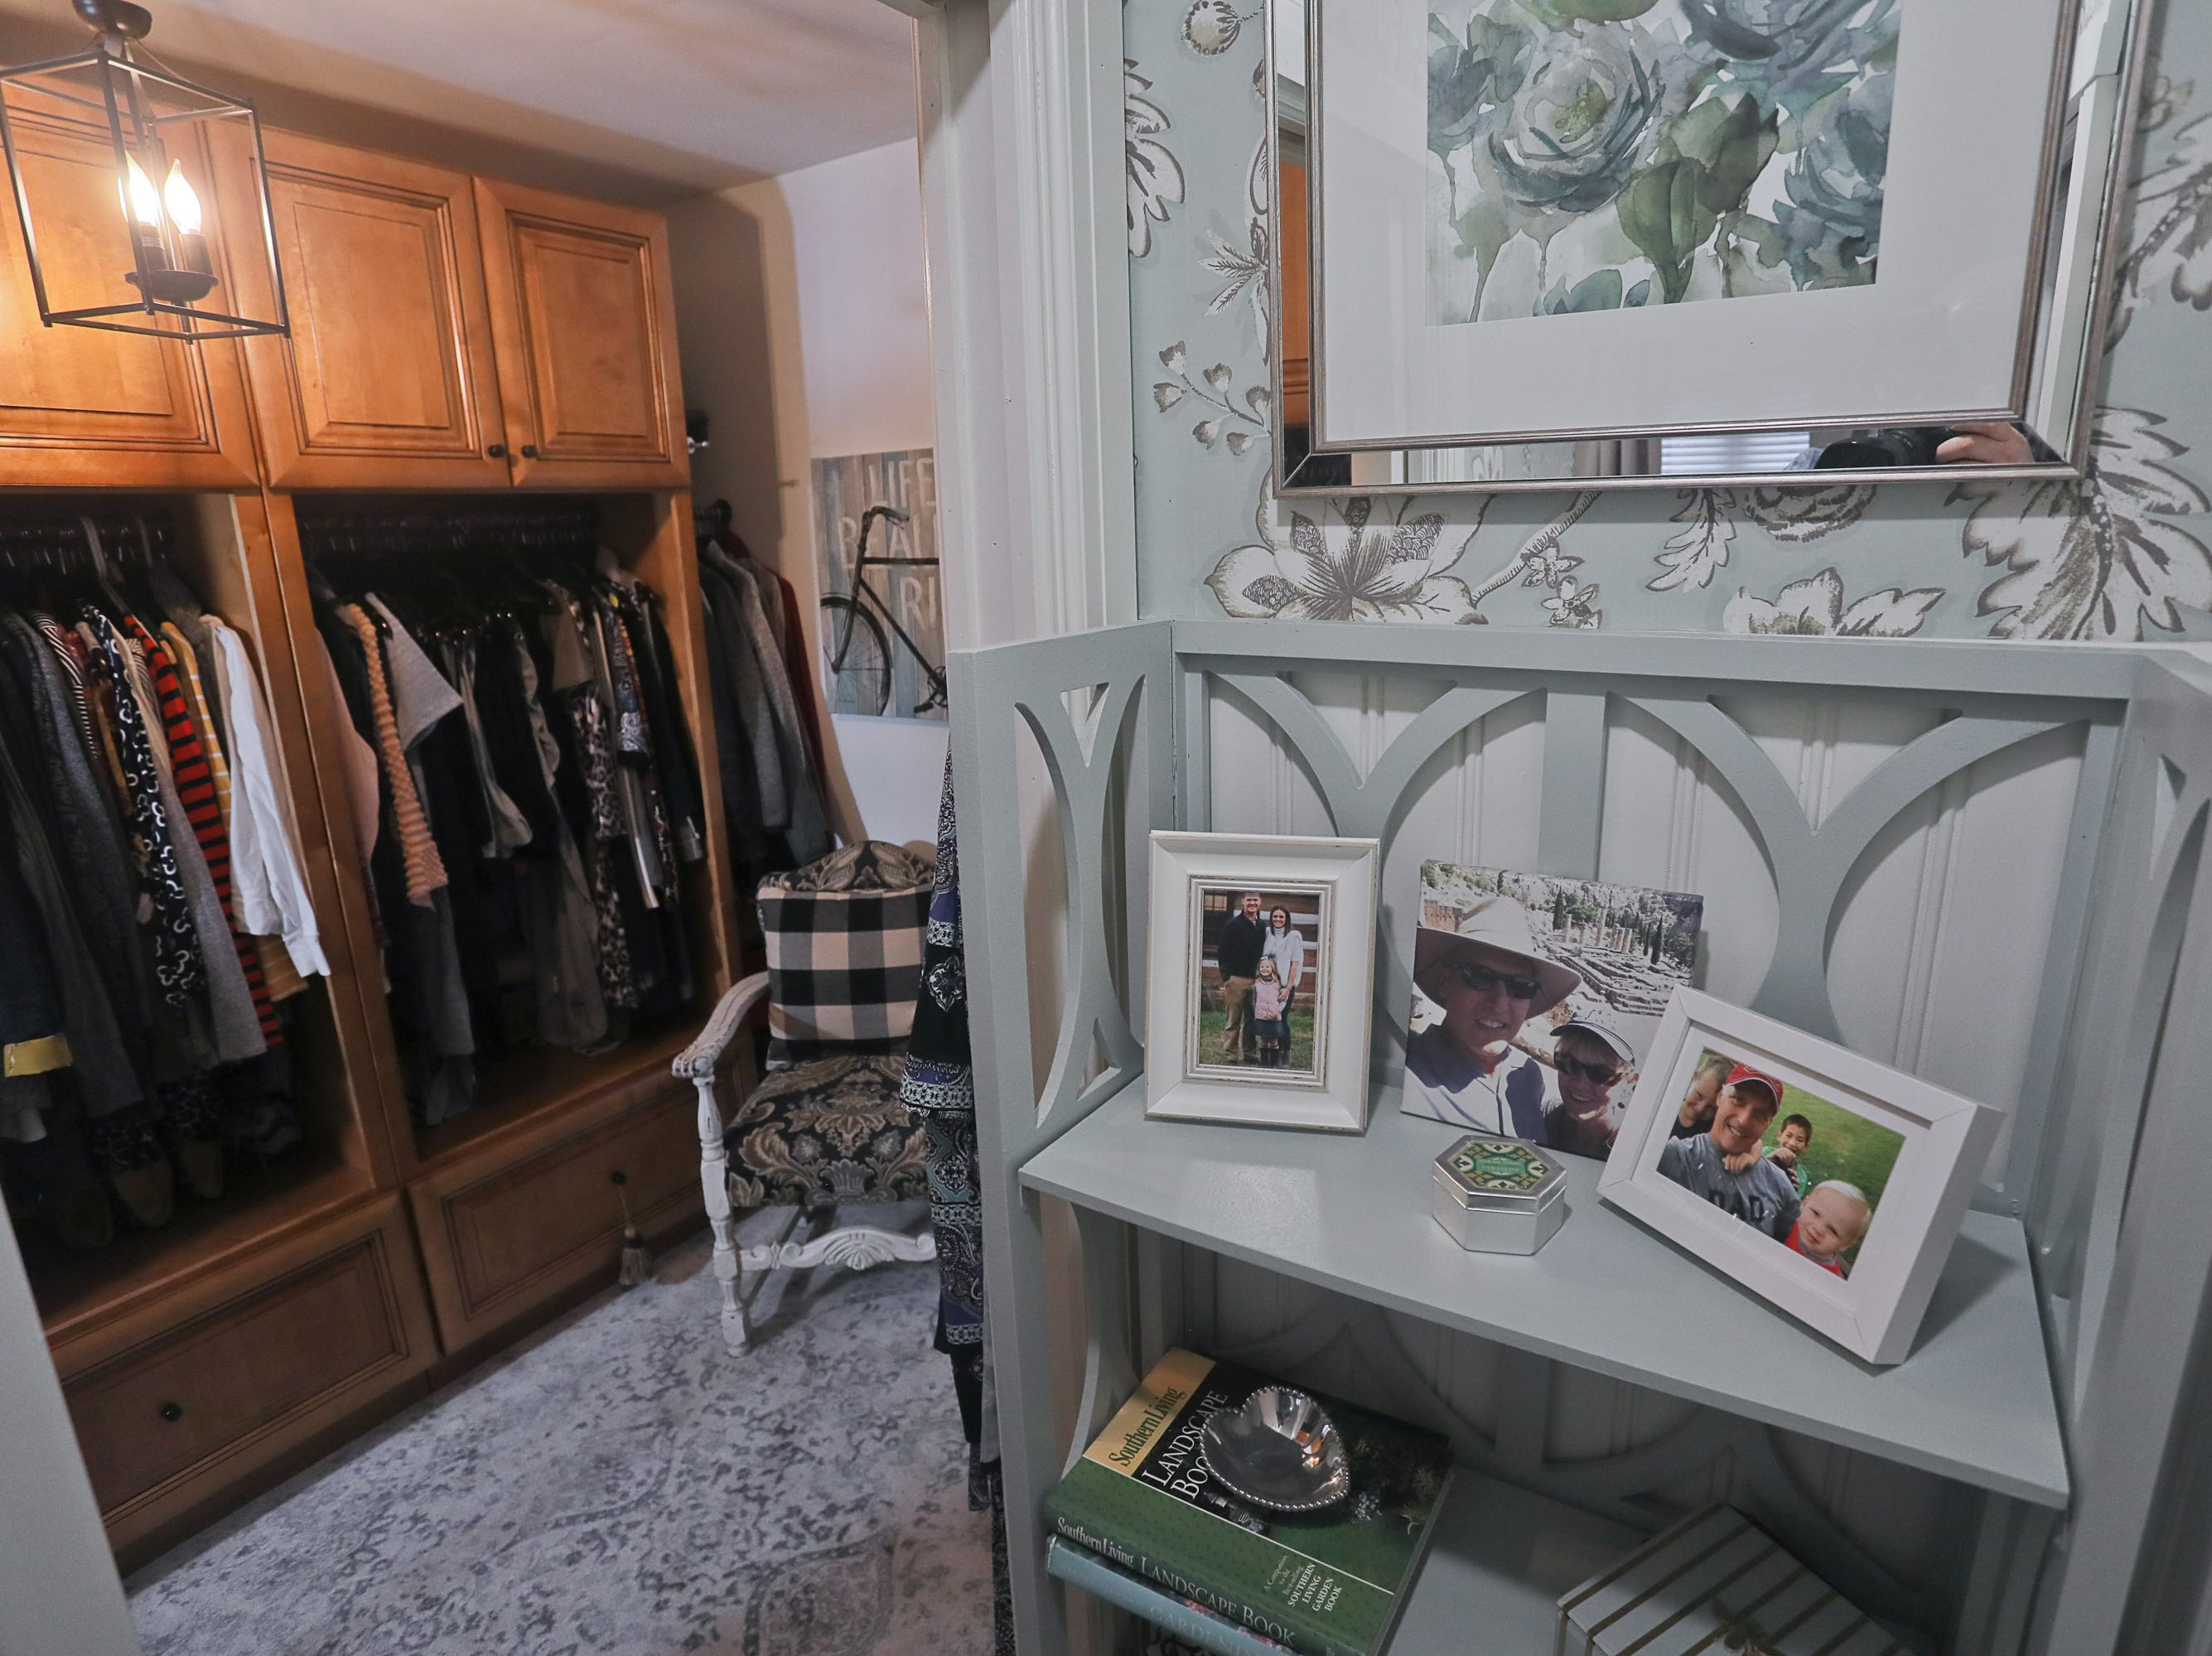 A walk-in closet at the home of Kelli Lorenzen in Louisville, KY. Feb. 12, 2019